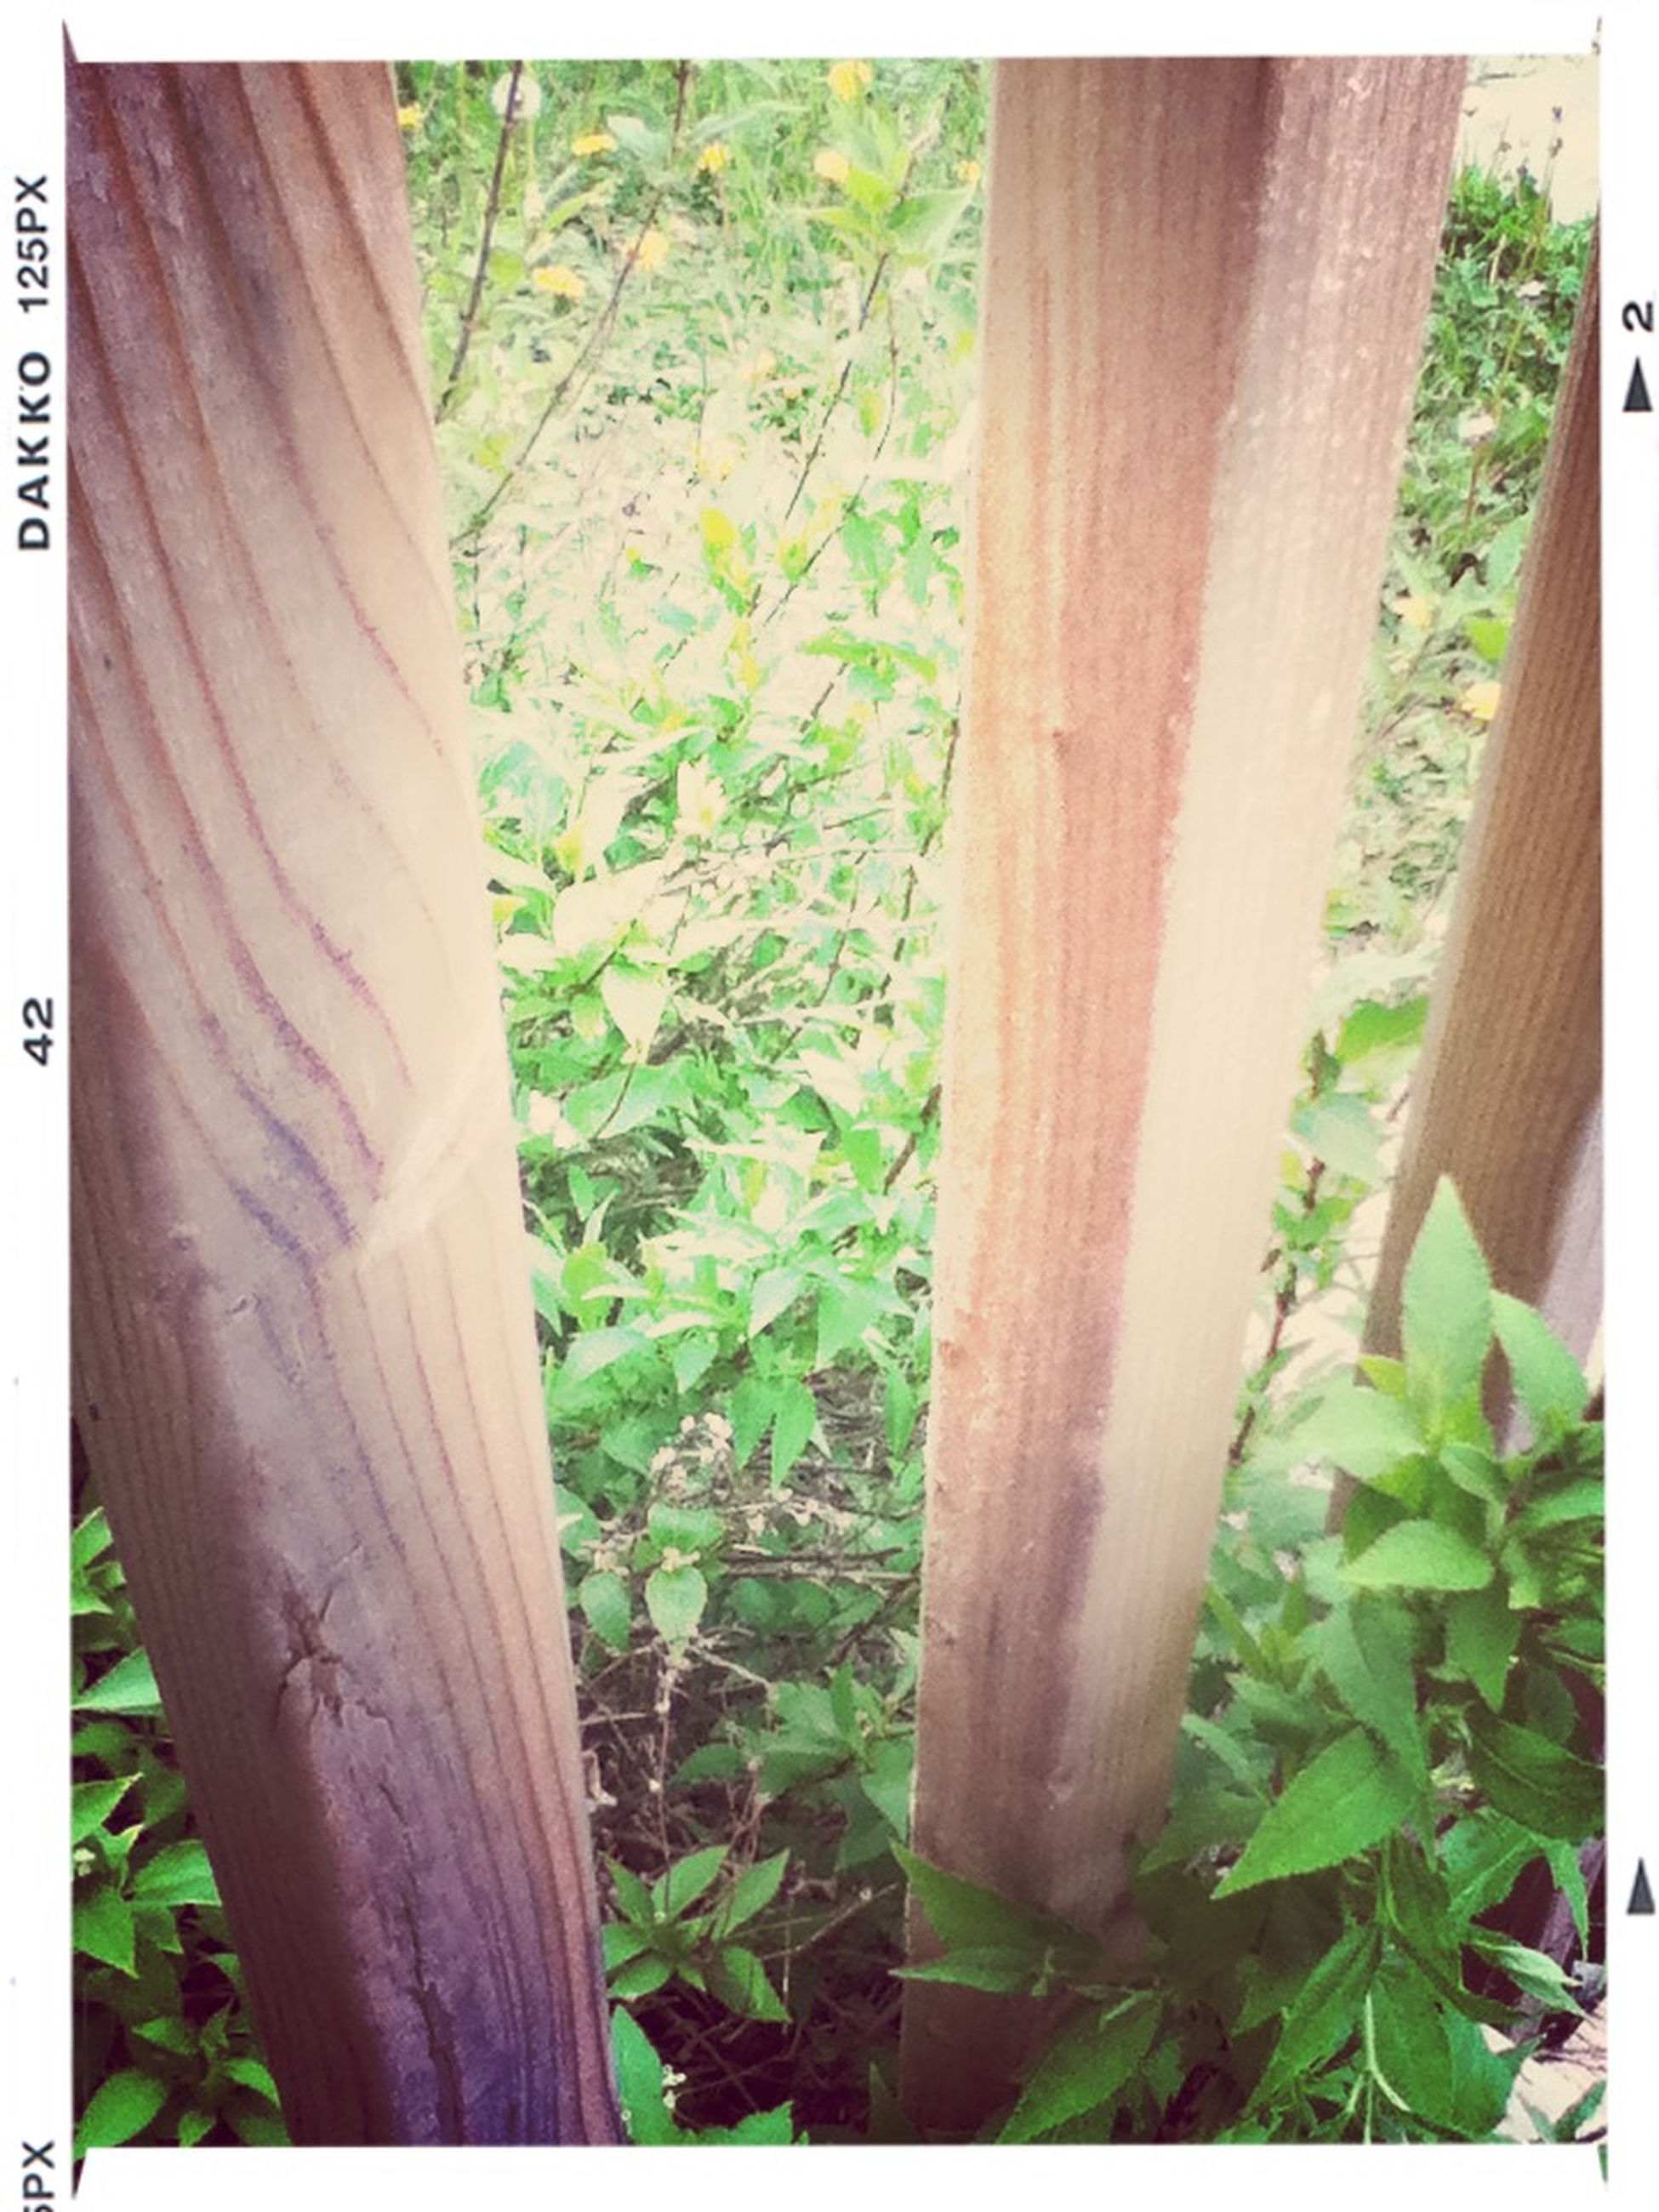 transfer print, wood - material, auto post production filter, growth, green color, tree trunk, plant, wooden, wood, tree, sunlight, nature, day, close-up, leaf, grass, outdoors, fence, green, no people